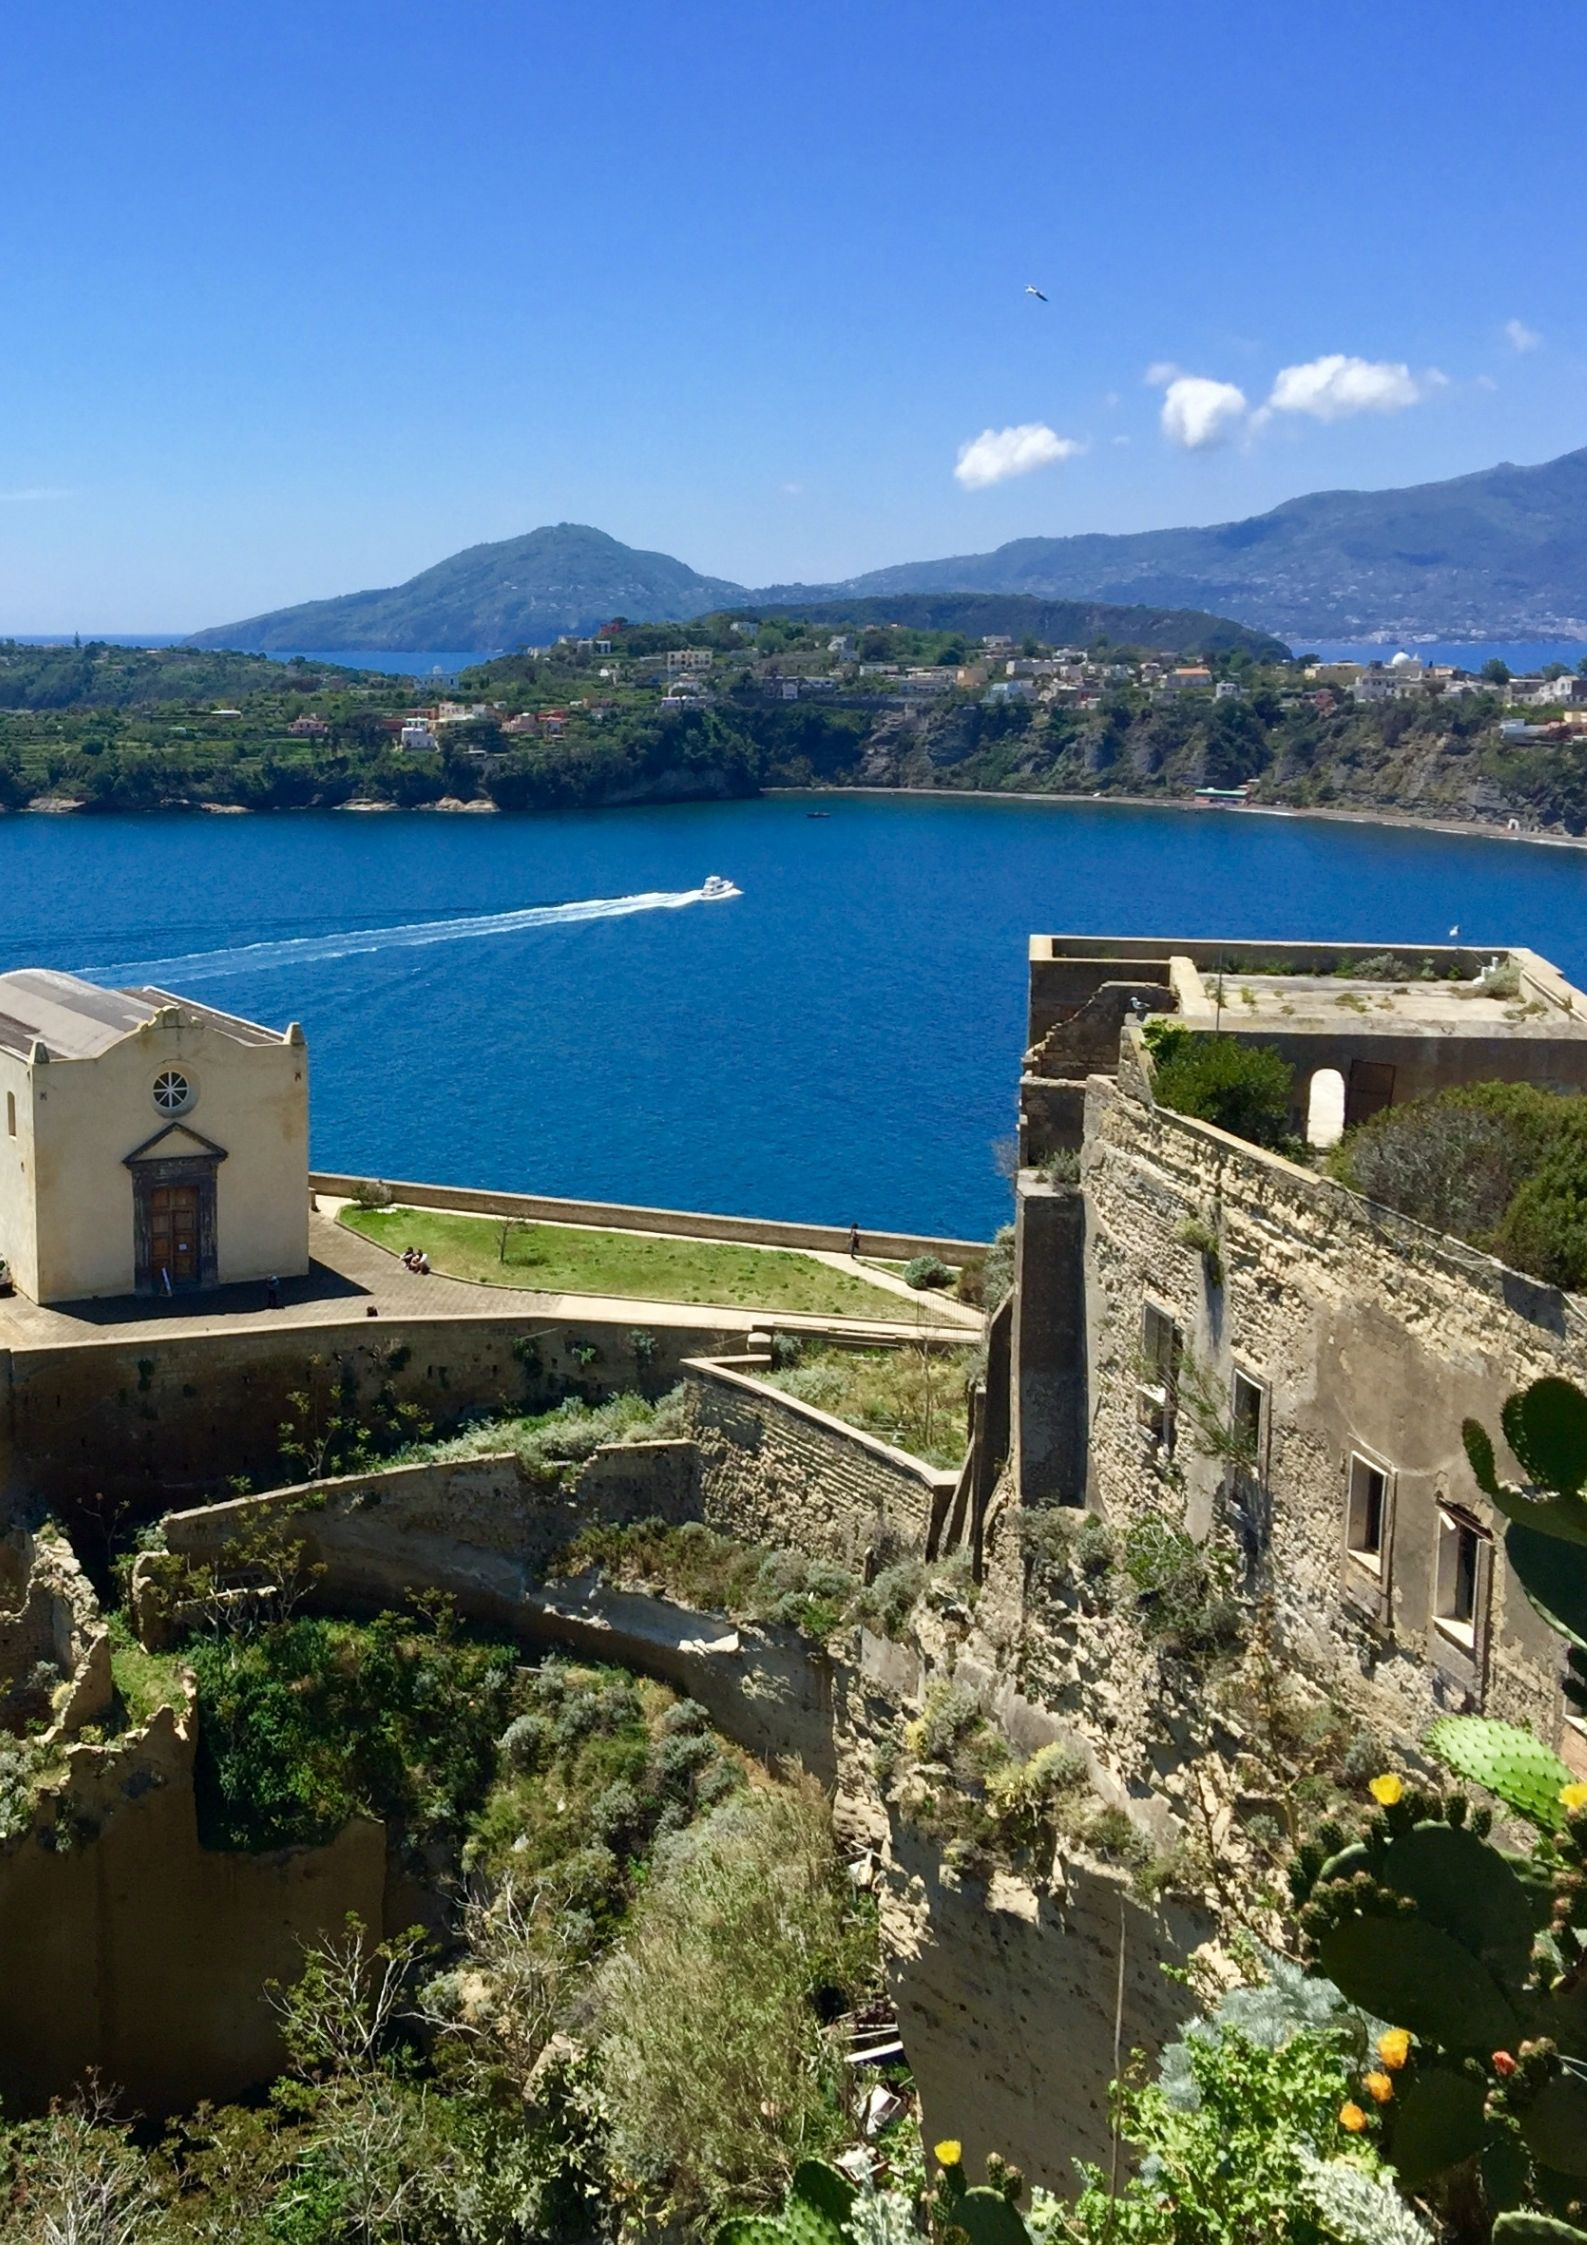 View of the church and the fortress of Terra Murata in Procida